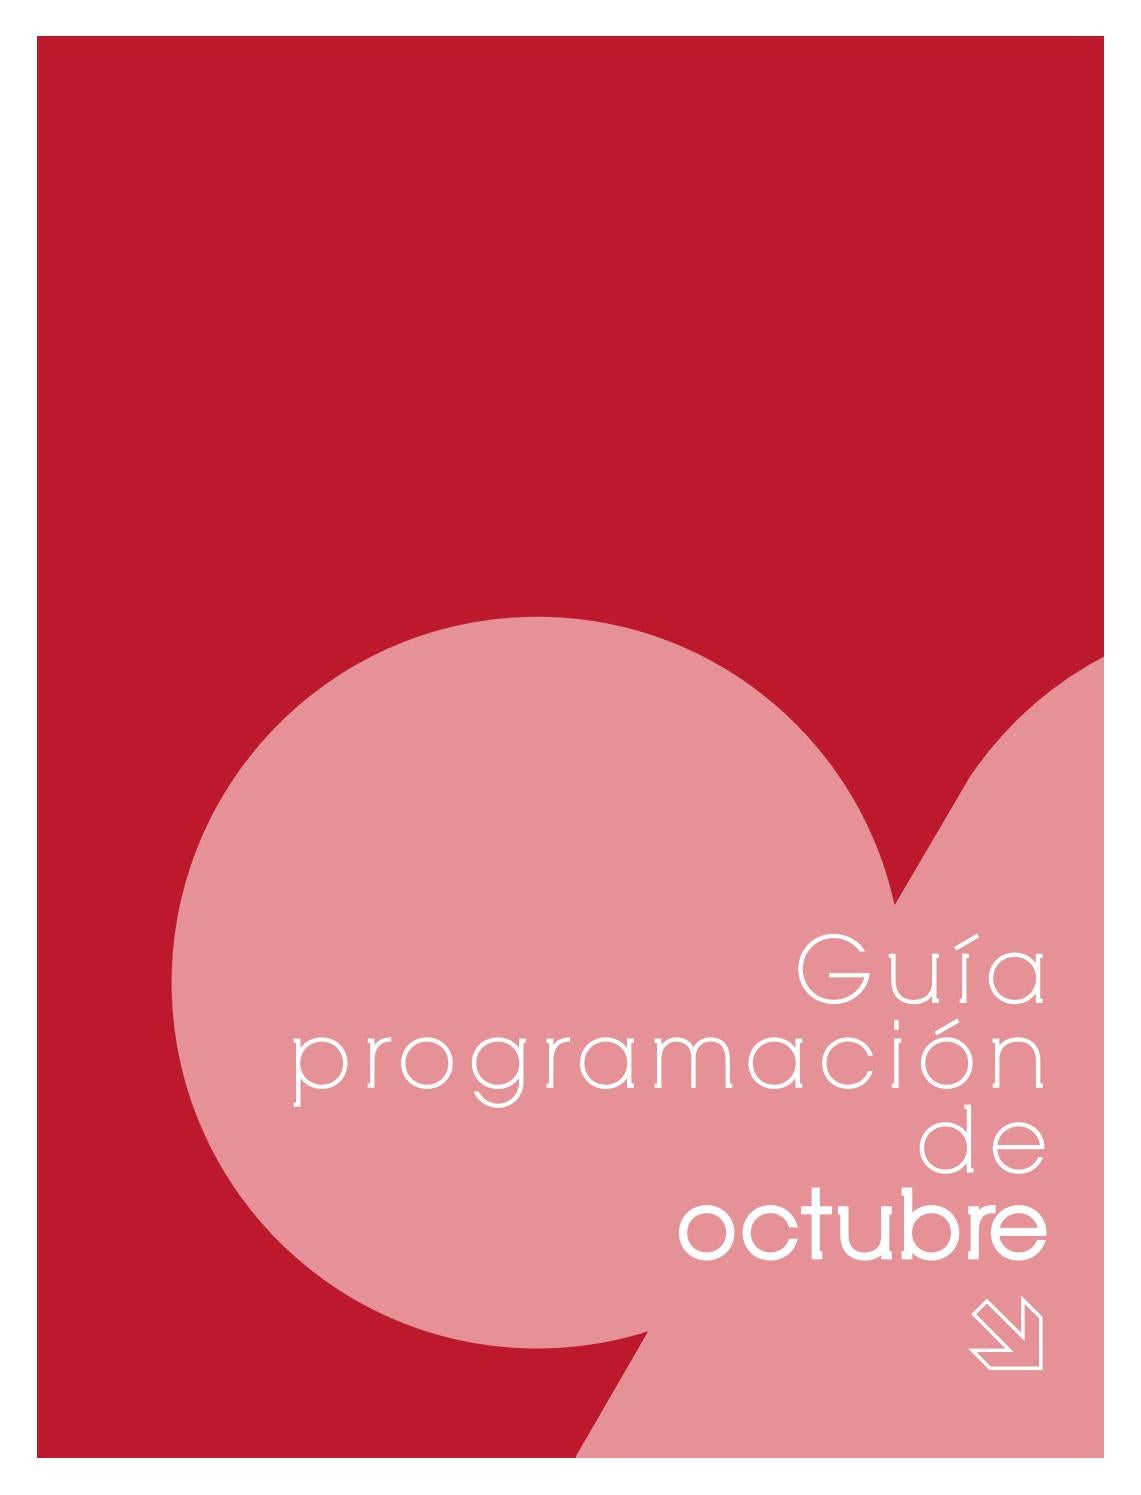 Programacion vtr oct 2016 by AlbertoTG - issuu